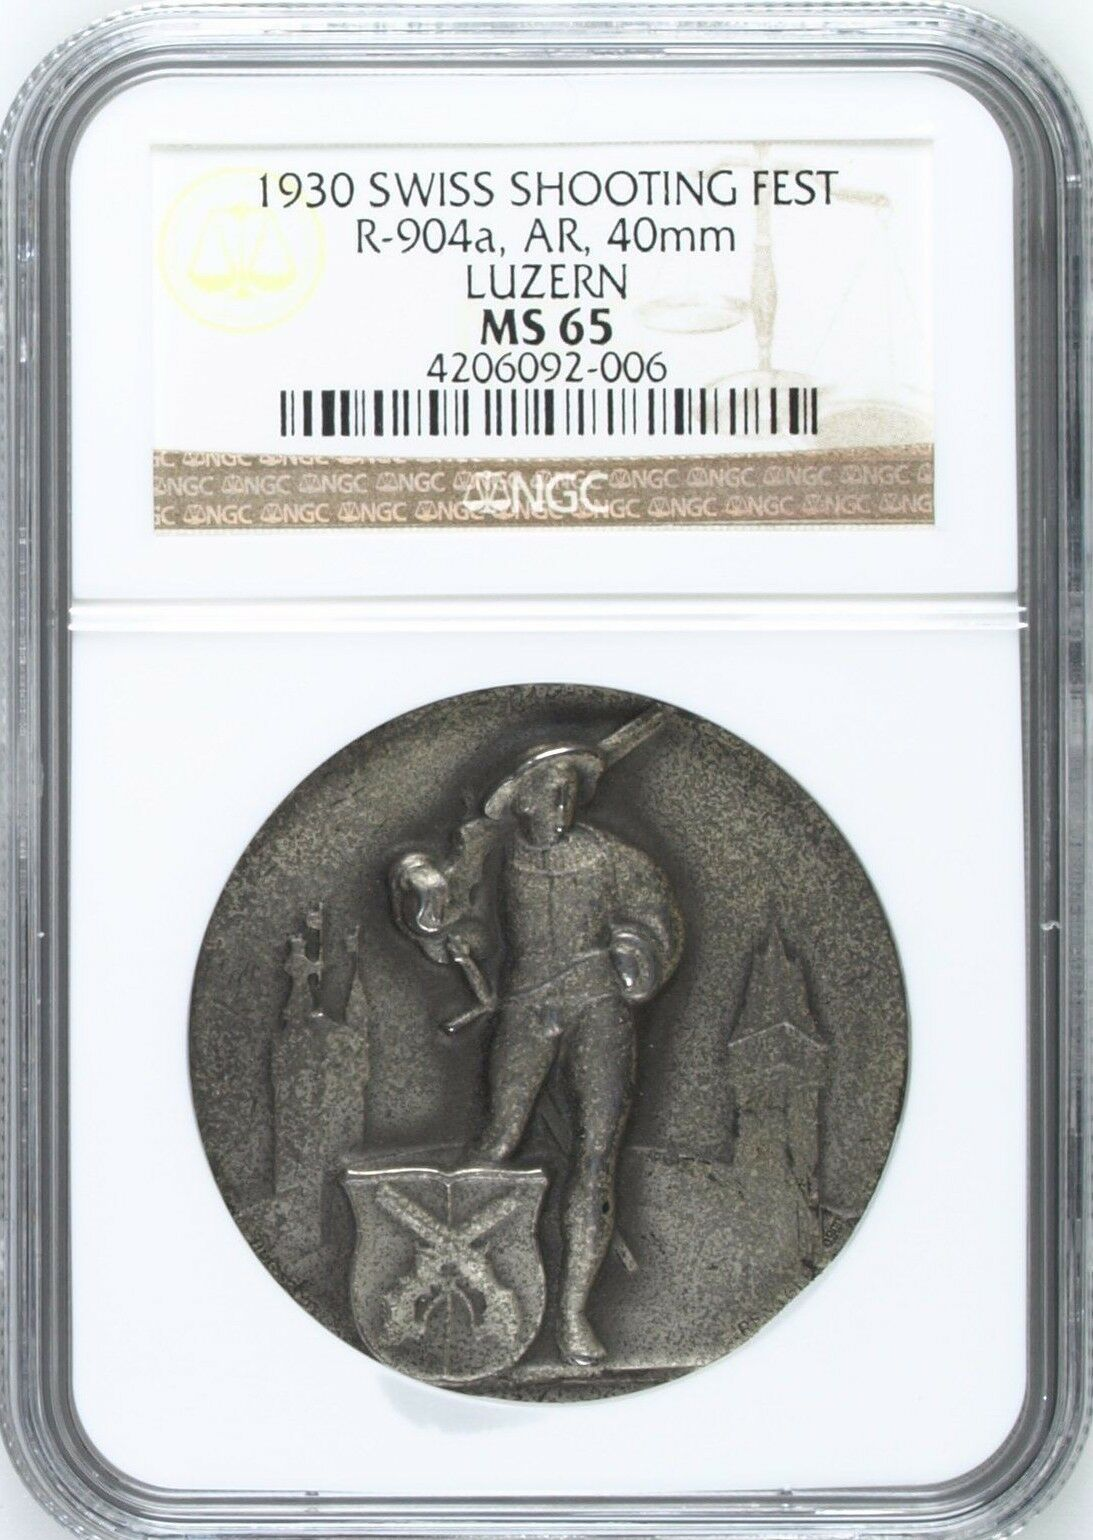 Swiss 1930 Silver Medal Shooting Fest Luzern Knight R-904a NGC MS65 Mintage-993